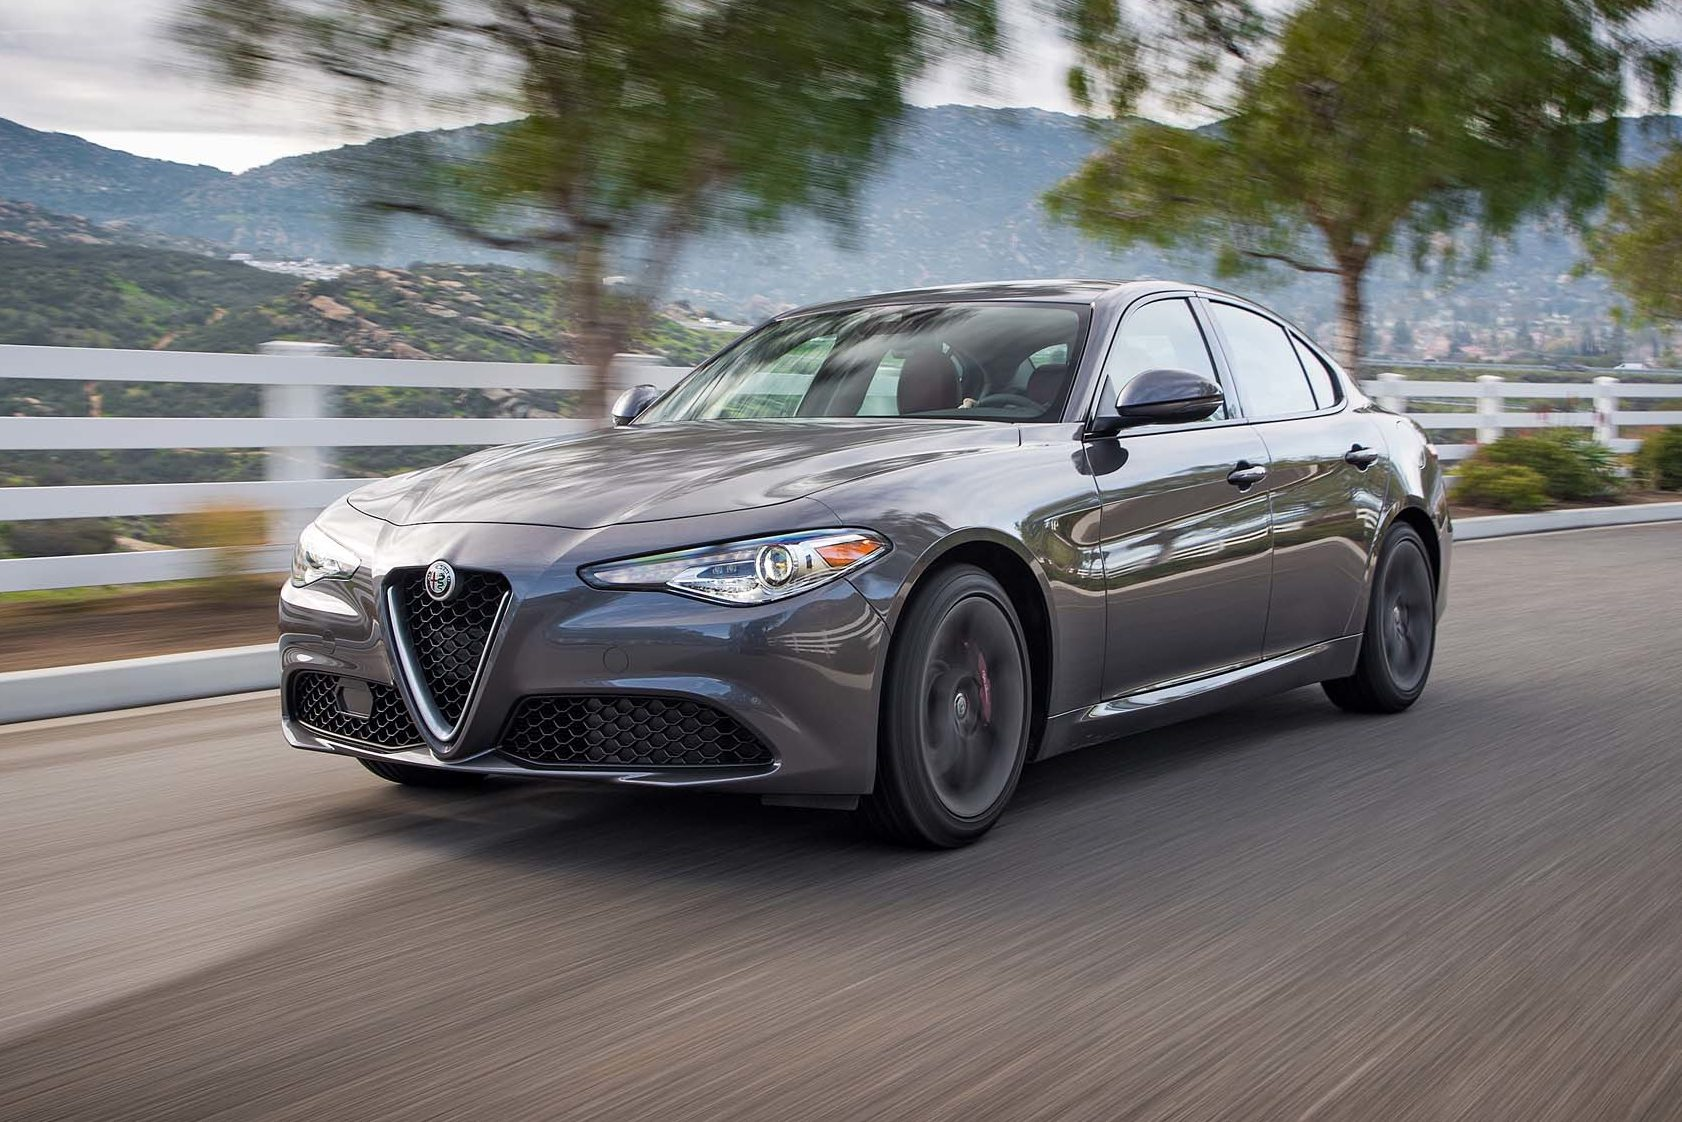 2017 Alfa Romeo Giulia 20 front three quarter in motion